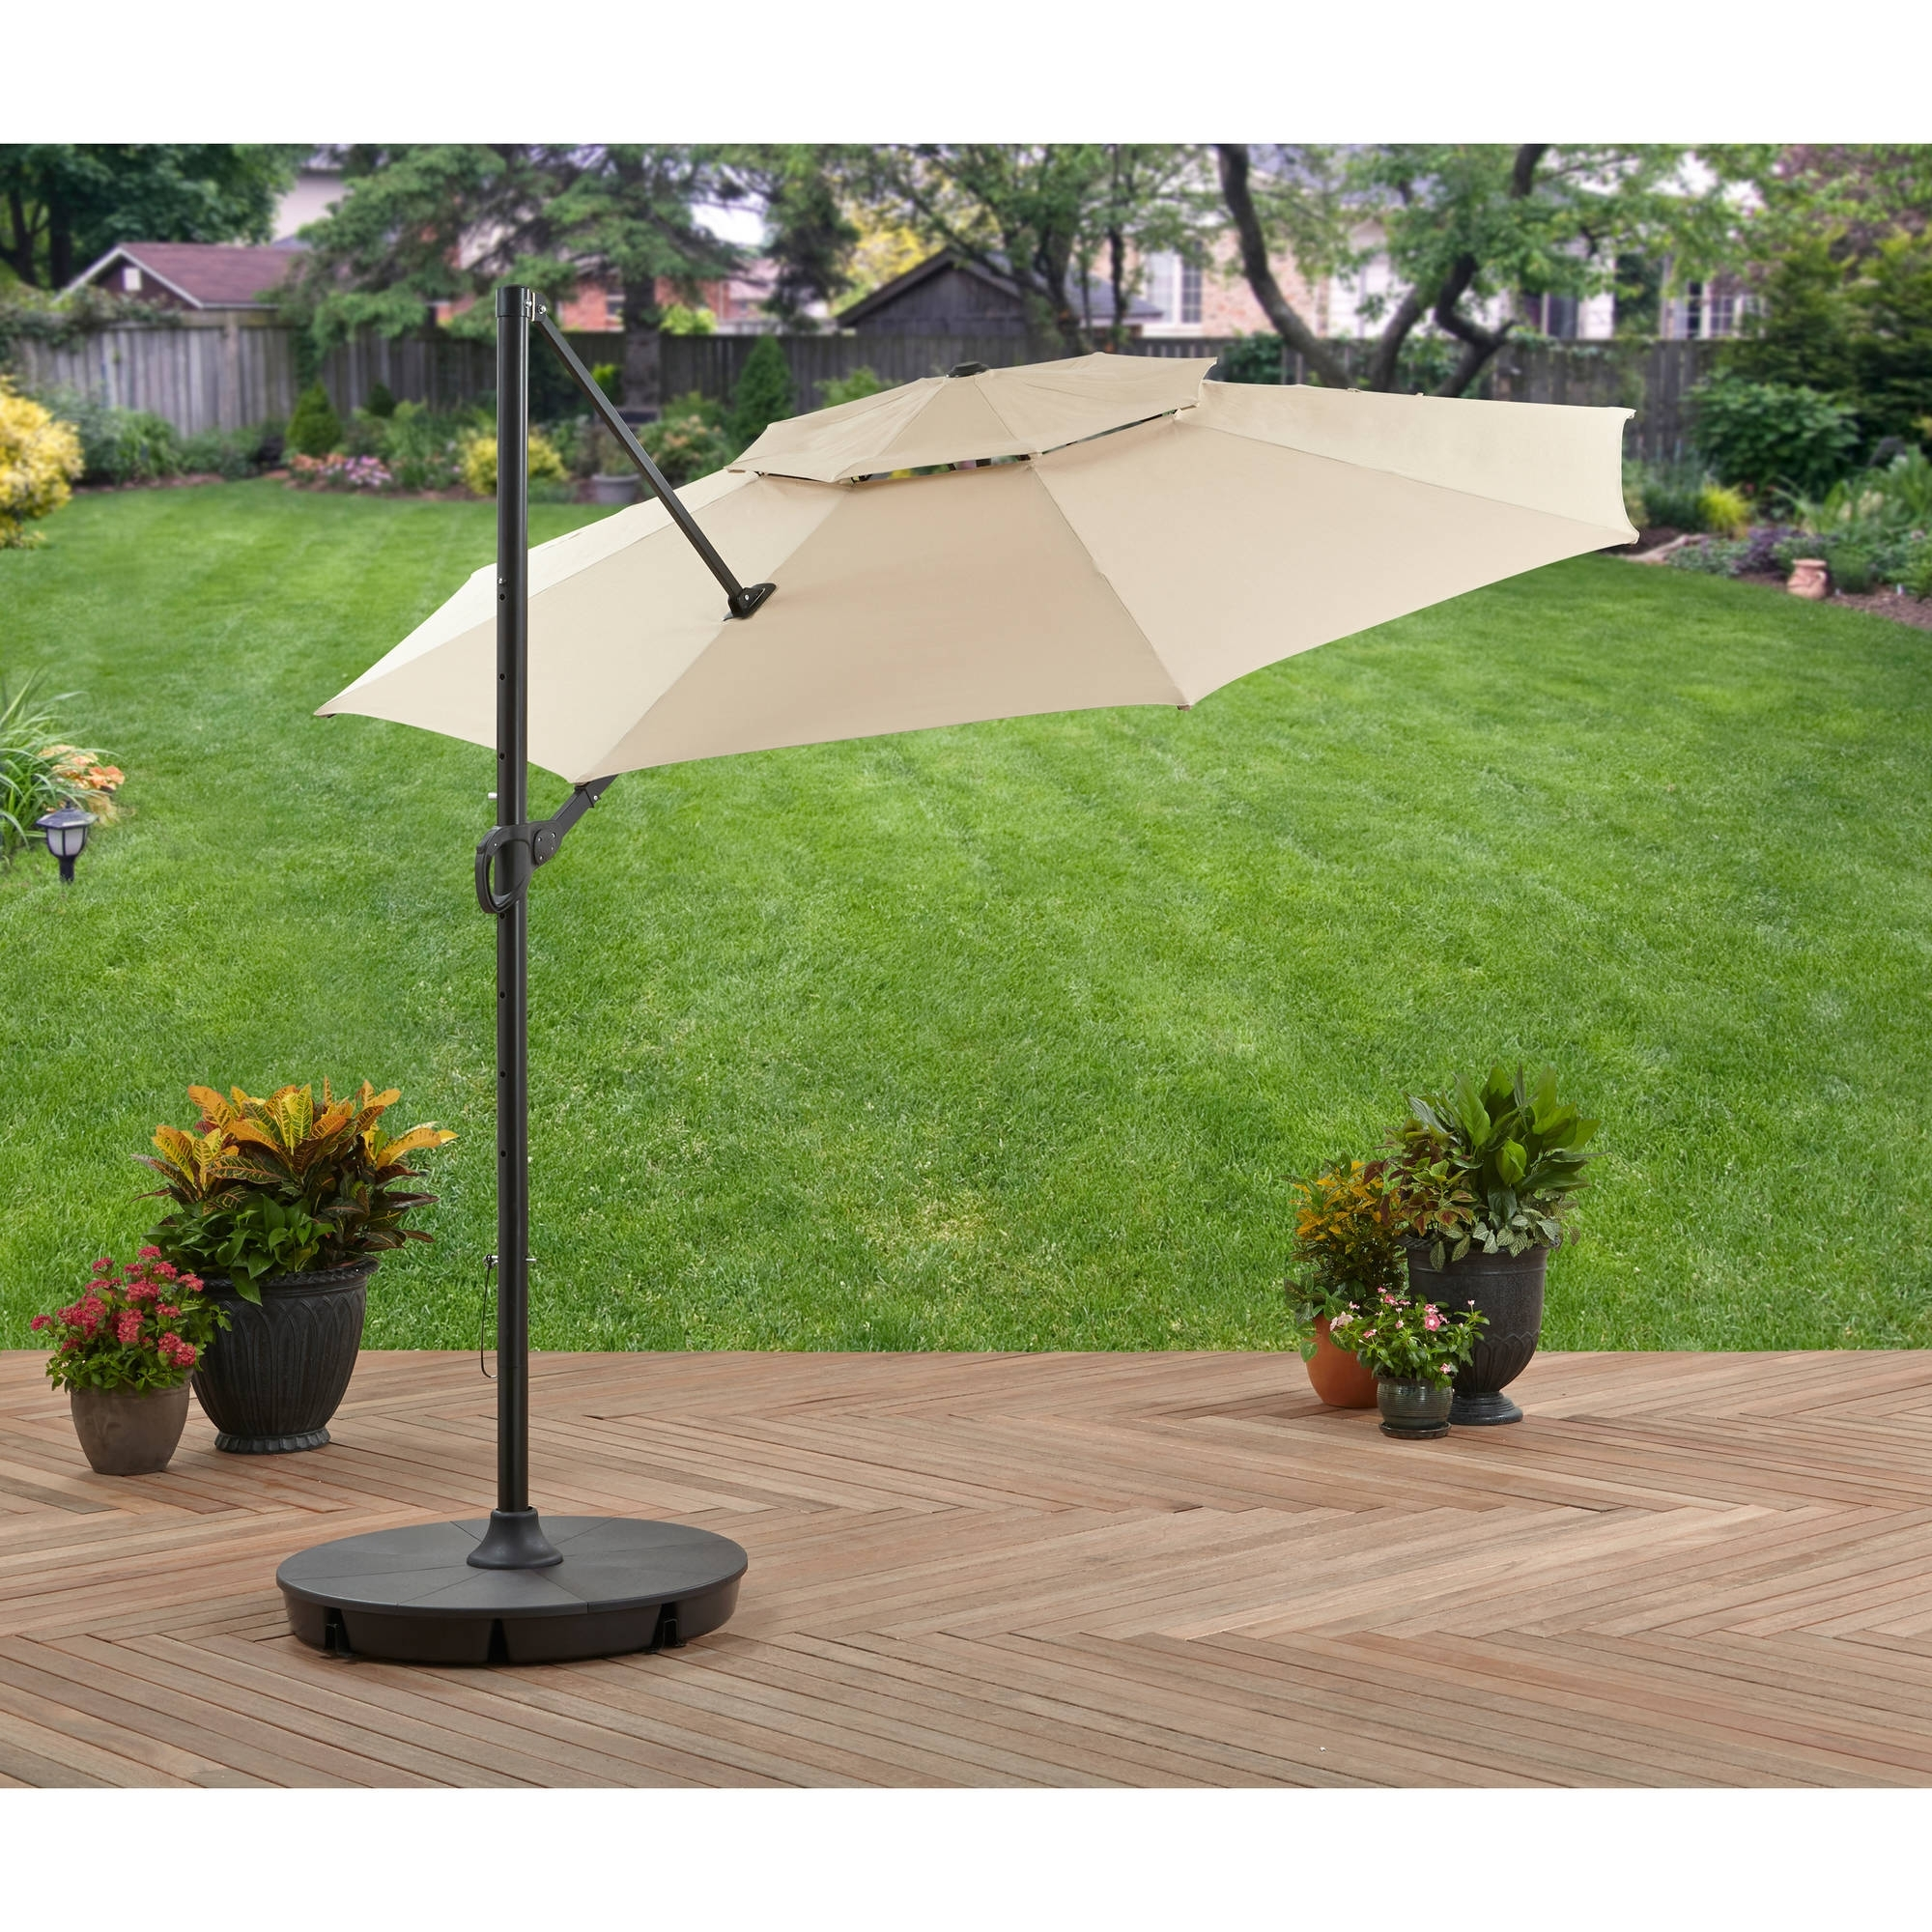 Favorite Walmart Patio Umbrellas Intended For Better Homes And Gardens 11' Offset Umbrella With Base, Tan (View 6 of 20)